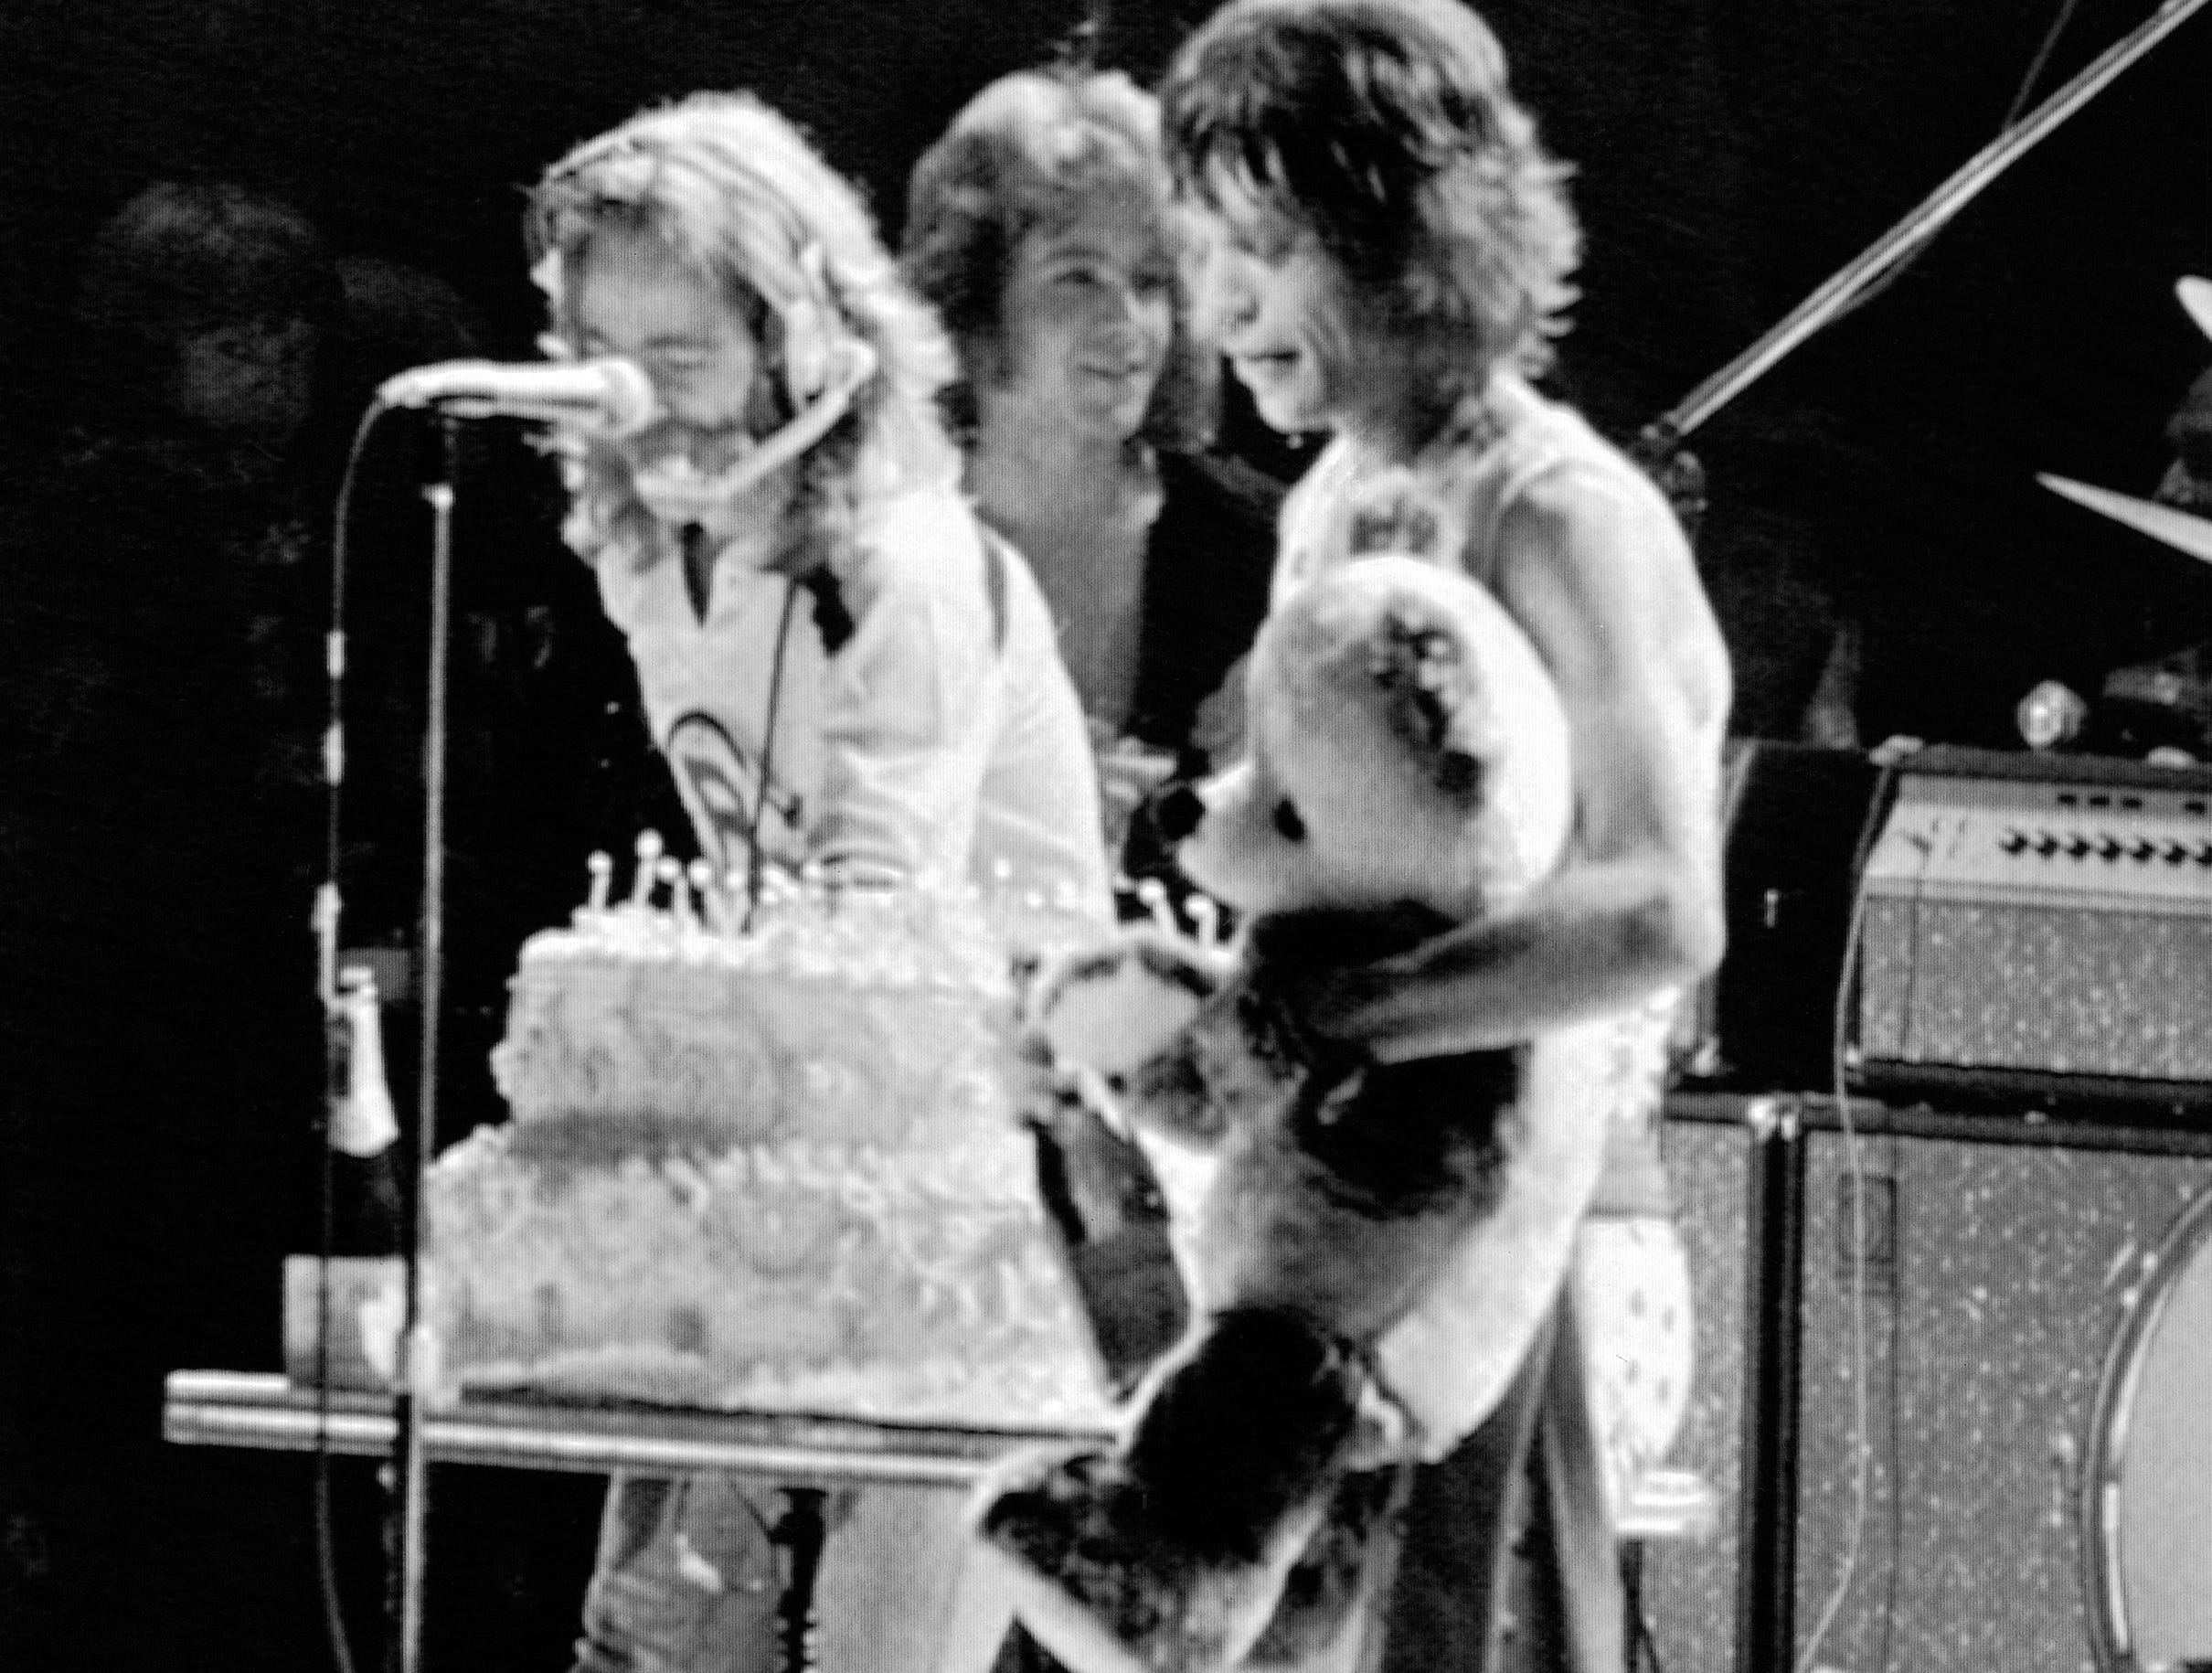 The Rolling Stones' Mick Jagger holds a big stuffed panda which was handed to him following performance at New York's Madison Square Garden on Wednesday, July 27, 1972. A birthday cake was also presented to the rock star, in honor of his 29th birthday. The Stones ended their 44-concert tour across the United States, and Canada. (AP Photo)